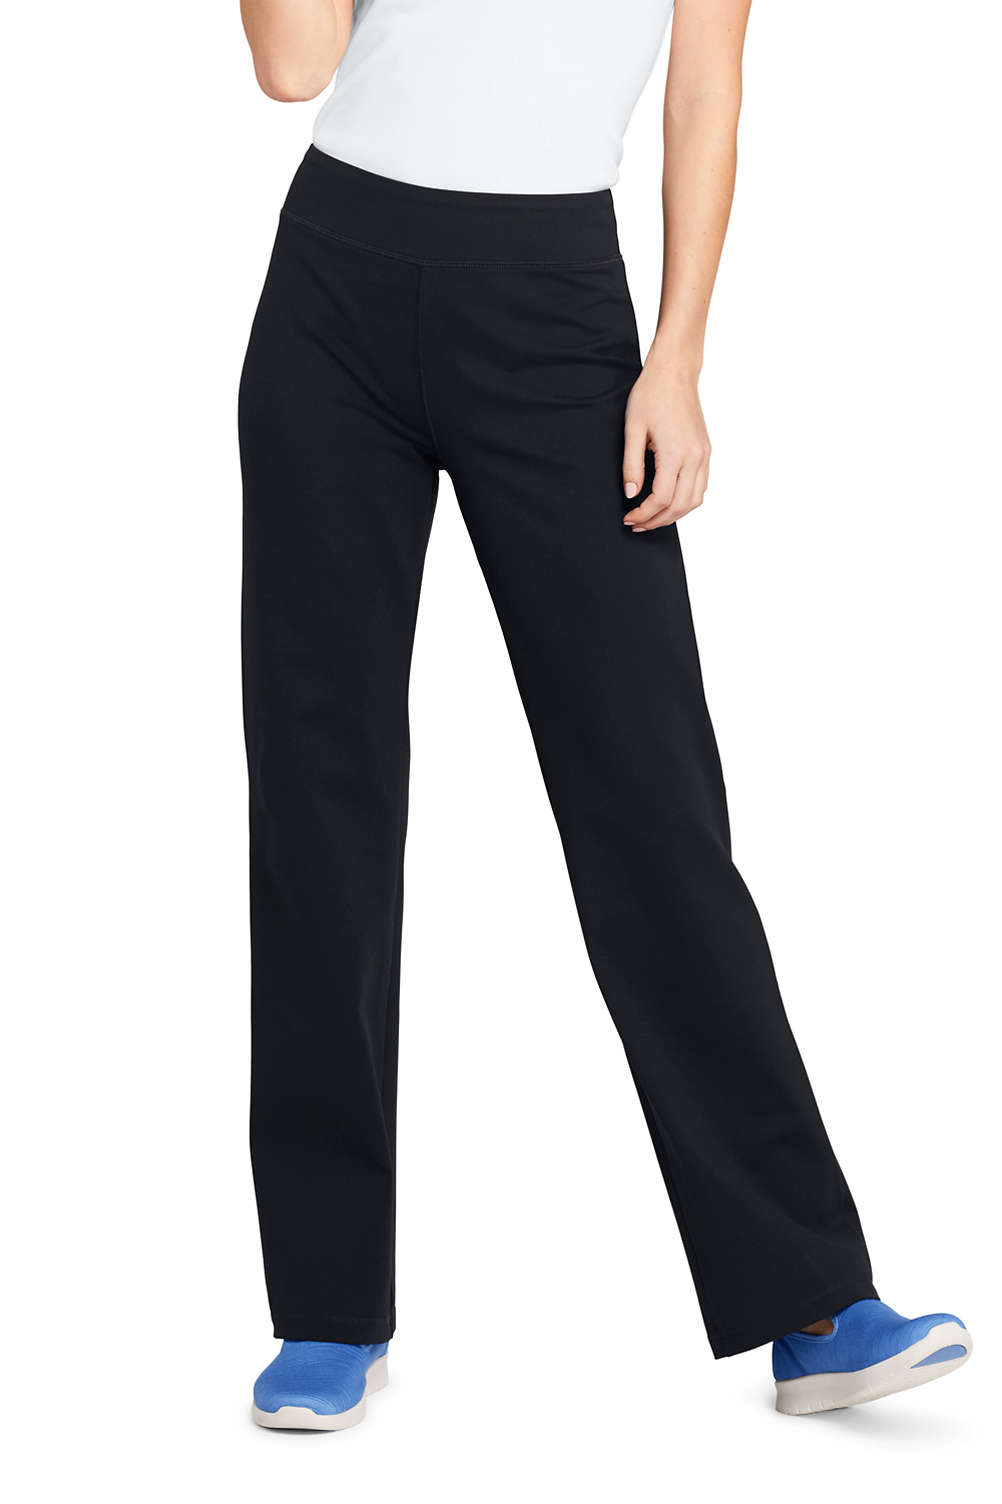 72569cca53 Women's Active Yoga Pants from Lands' End